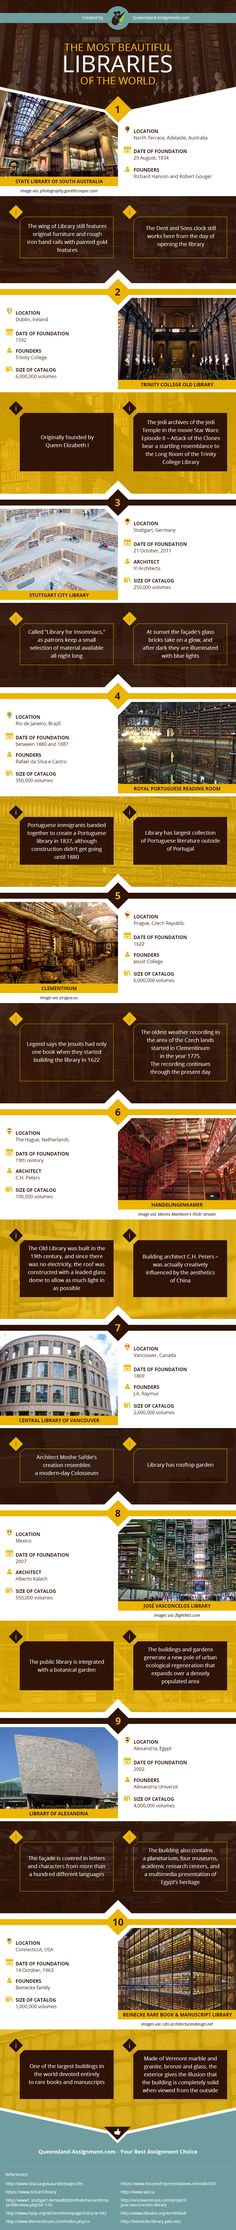 The Most Beautiful Libraries of the World Infographic - http://elearninginfographics.com/most-beautiful-libraries-infographic/